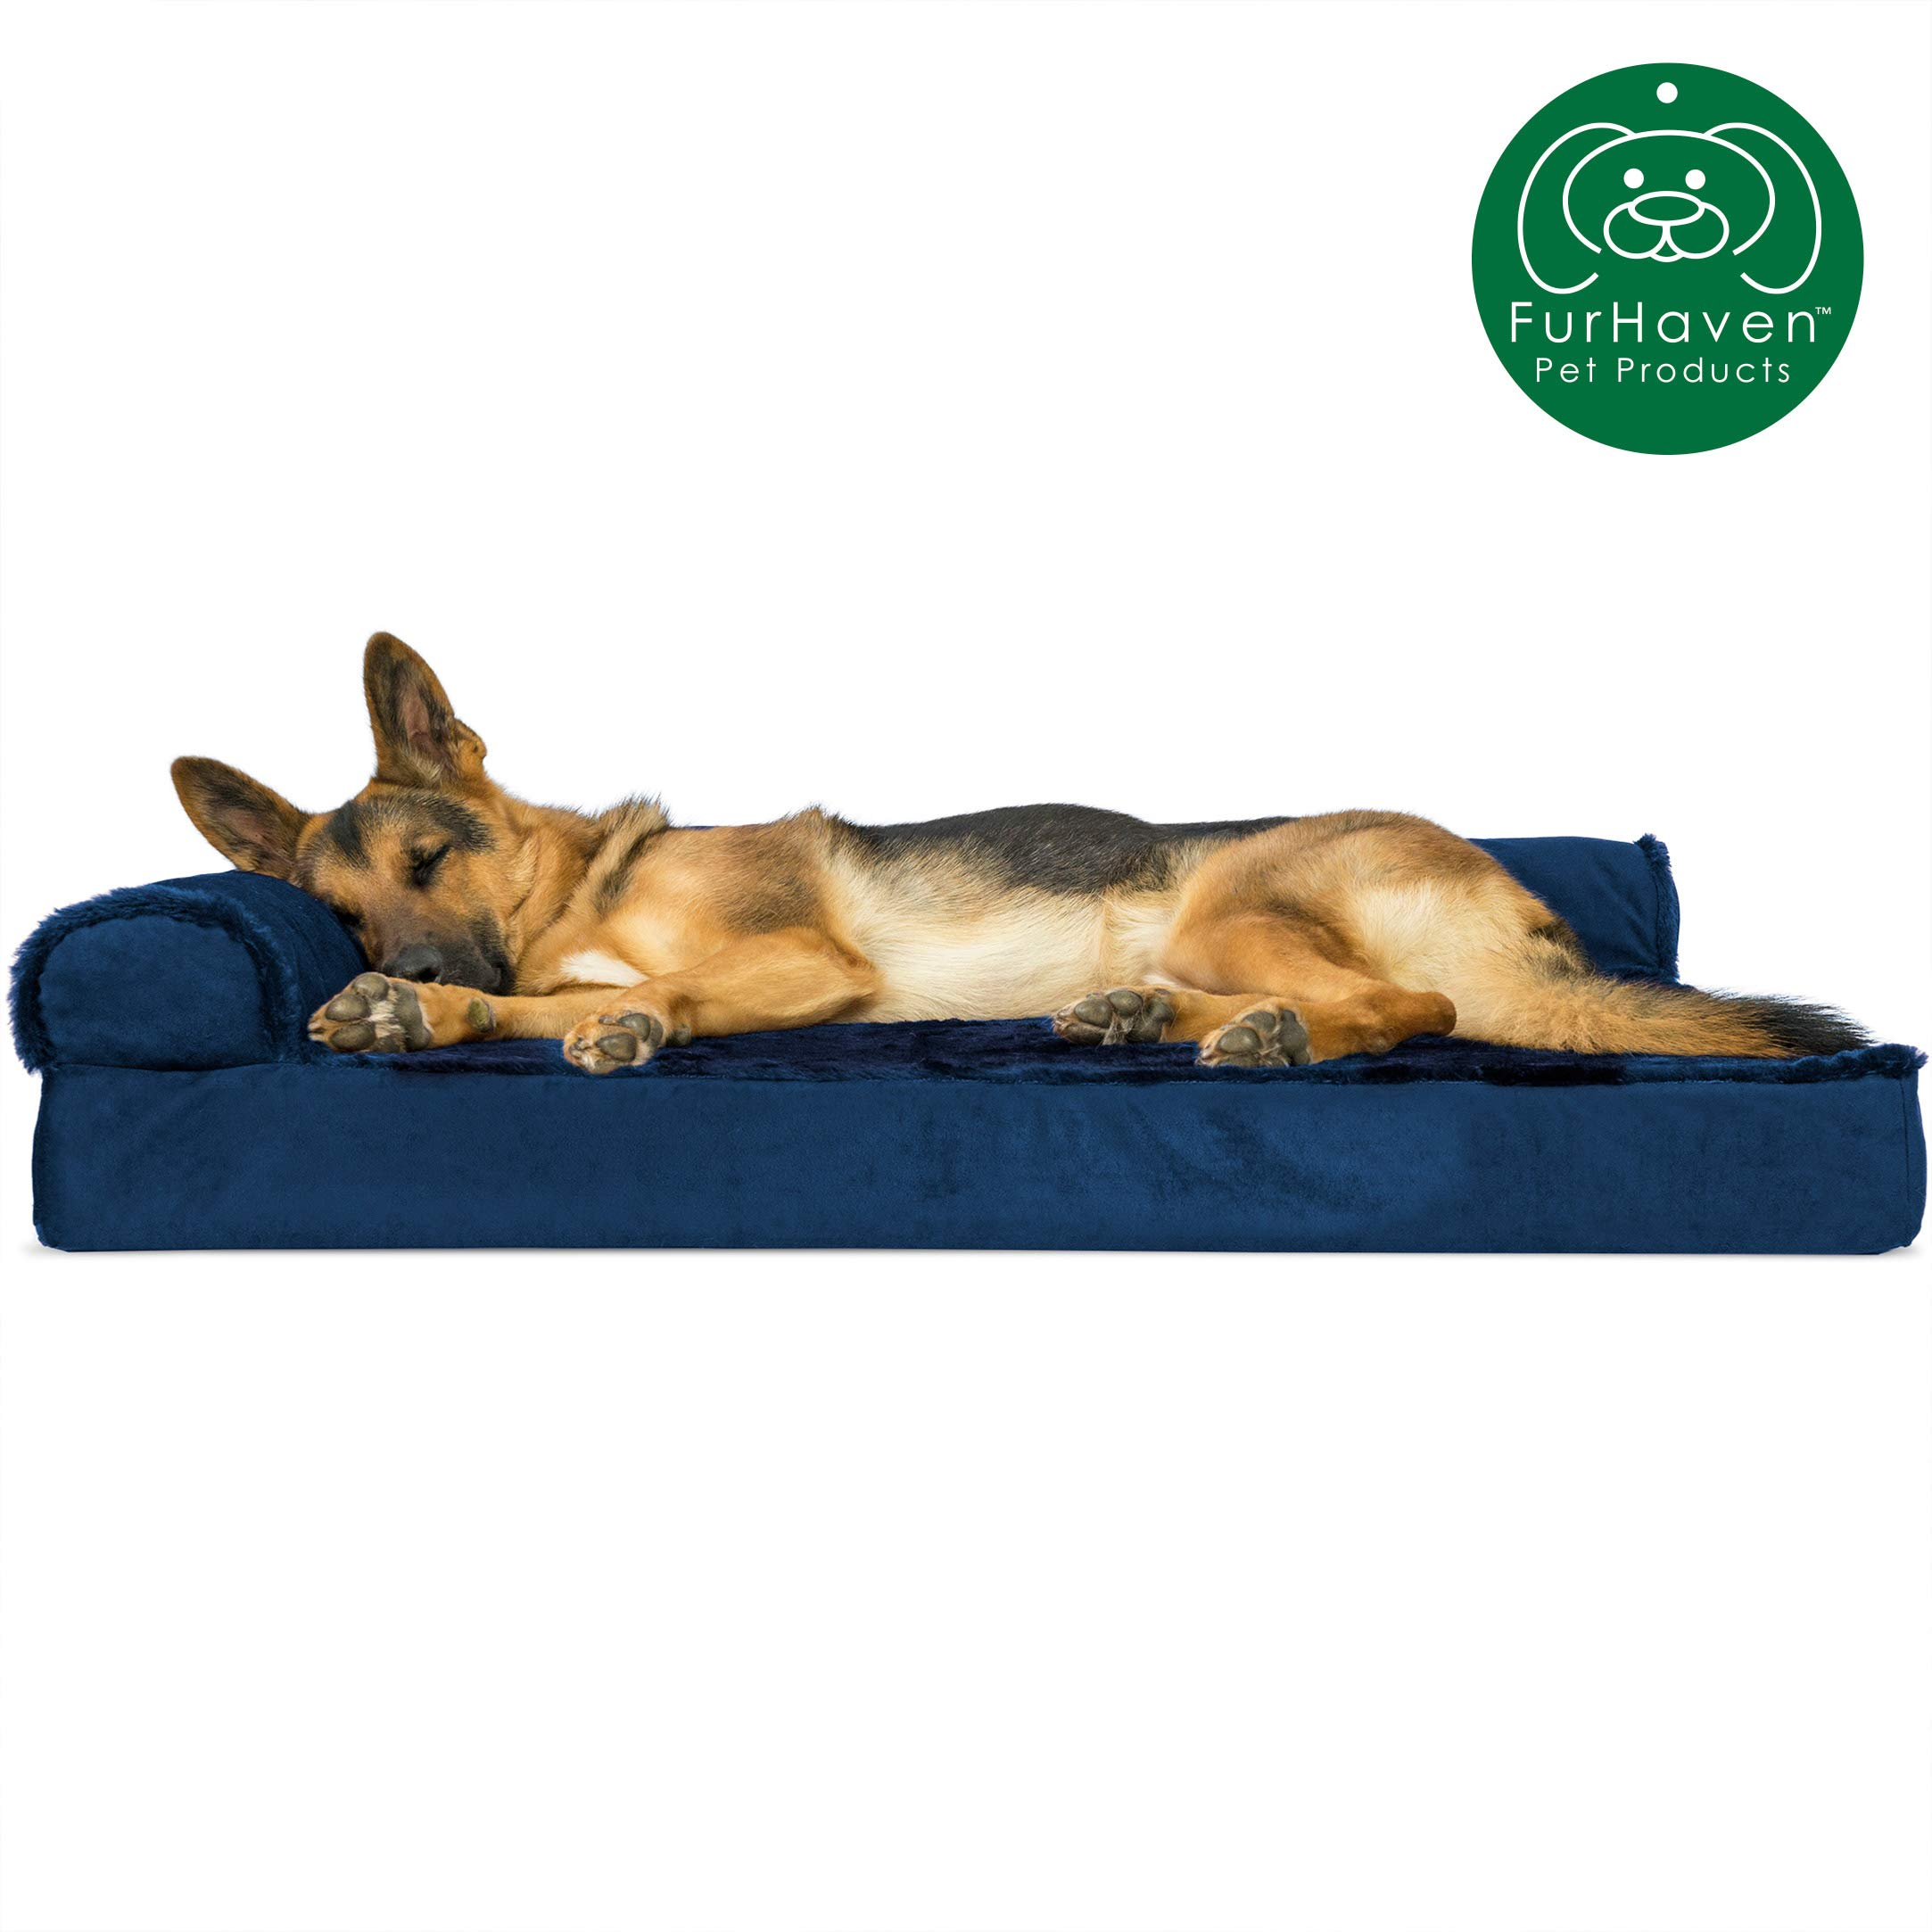 Furhaven Pet Dog Bed | Deluxe Orthopedic Plush Faux Fur & Velvet L Shaped Chaise Lounge Living Room Corner Couch Pet Bed w/ Removable Cover for Dogs & Cats, Deep Sapphire, Jumbo by Furhaven